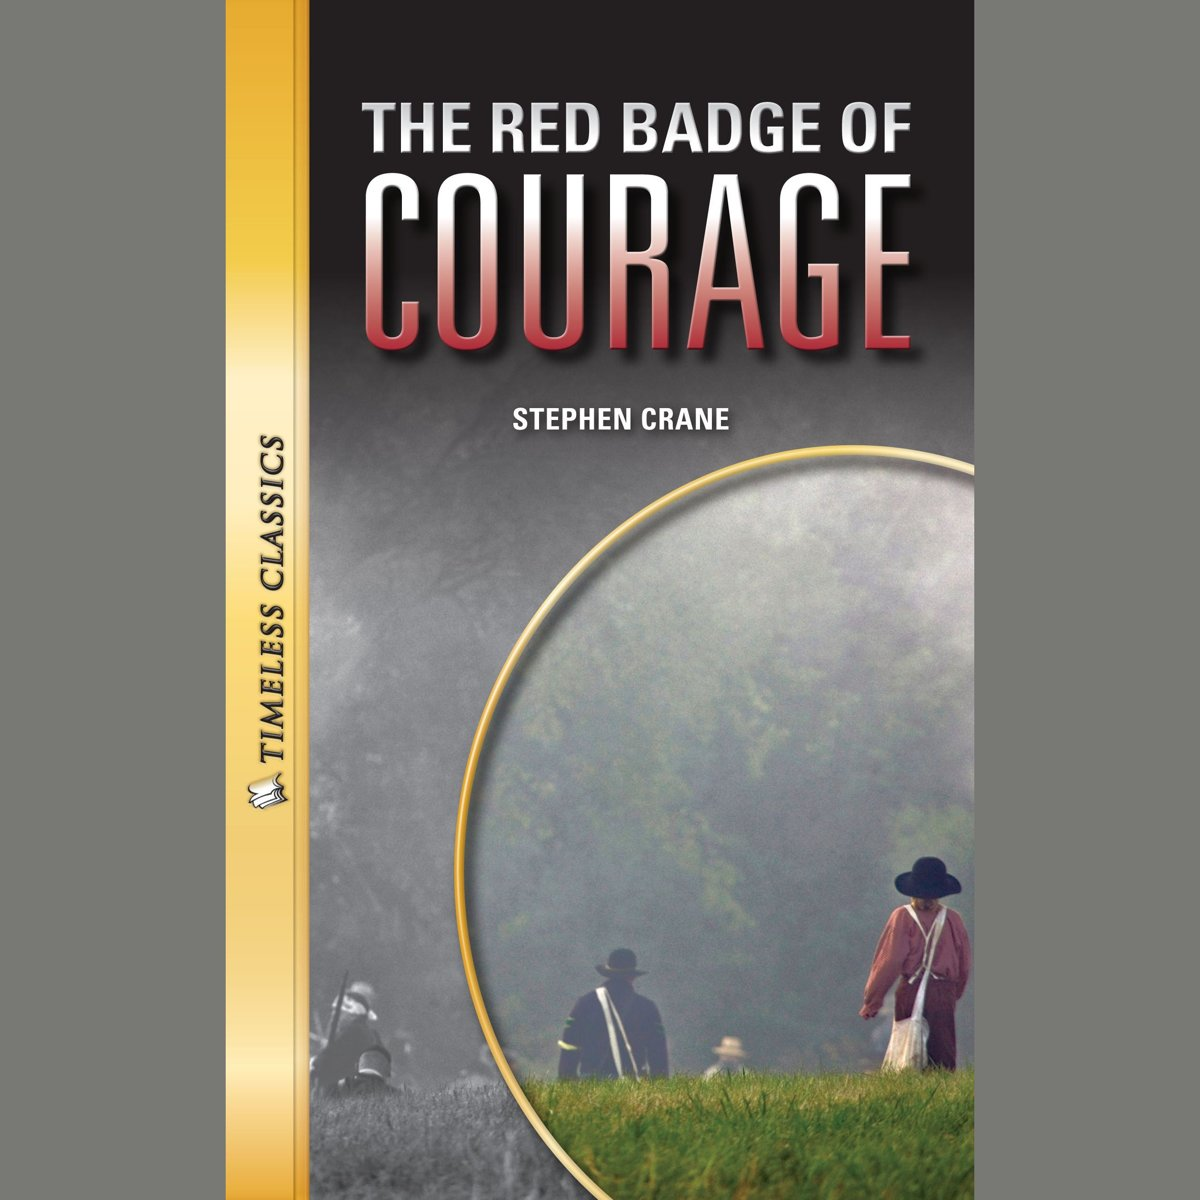 The Red Badge of Courage Digital Audio (Timeless)